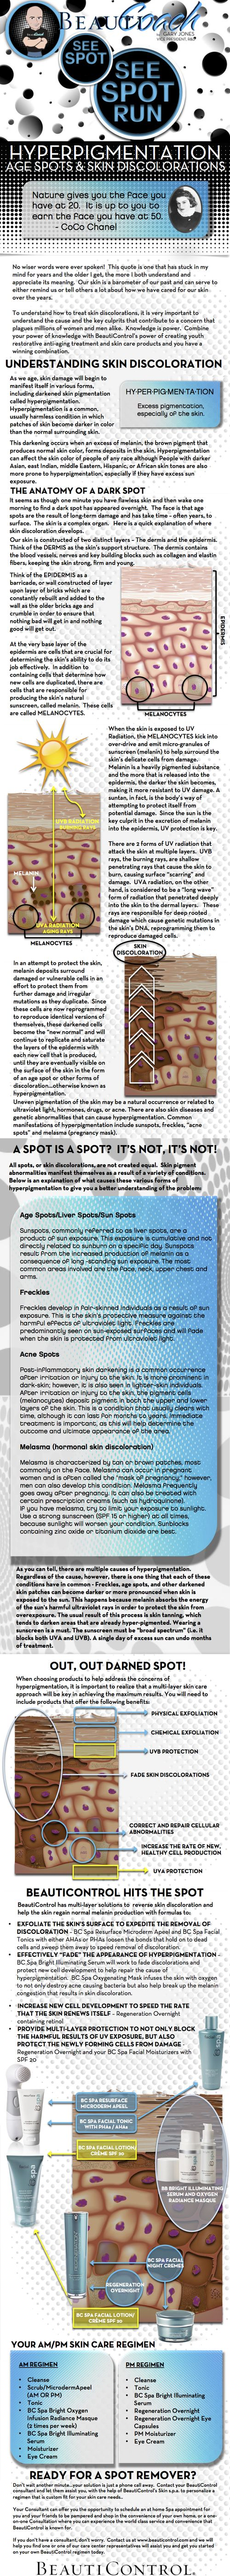 BEAUTICOACH SEE SPOT SEE SPOT RUN INFOGRAPHIC - JPG 12-22